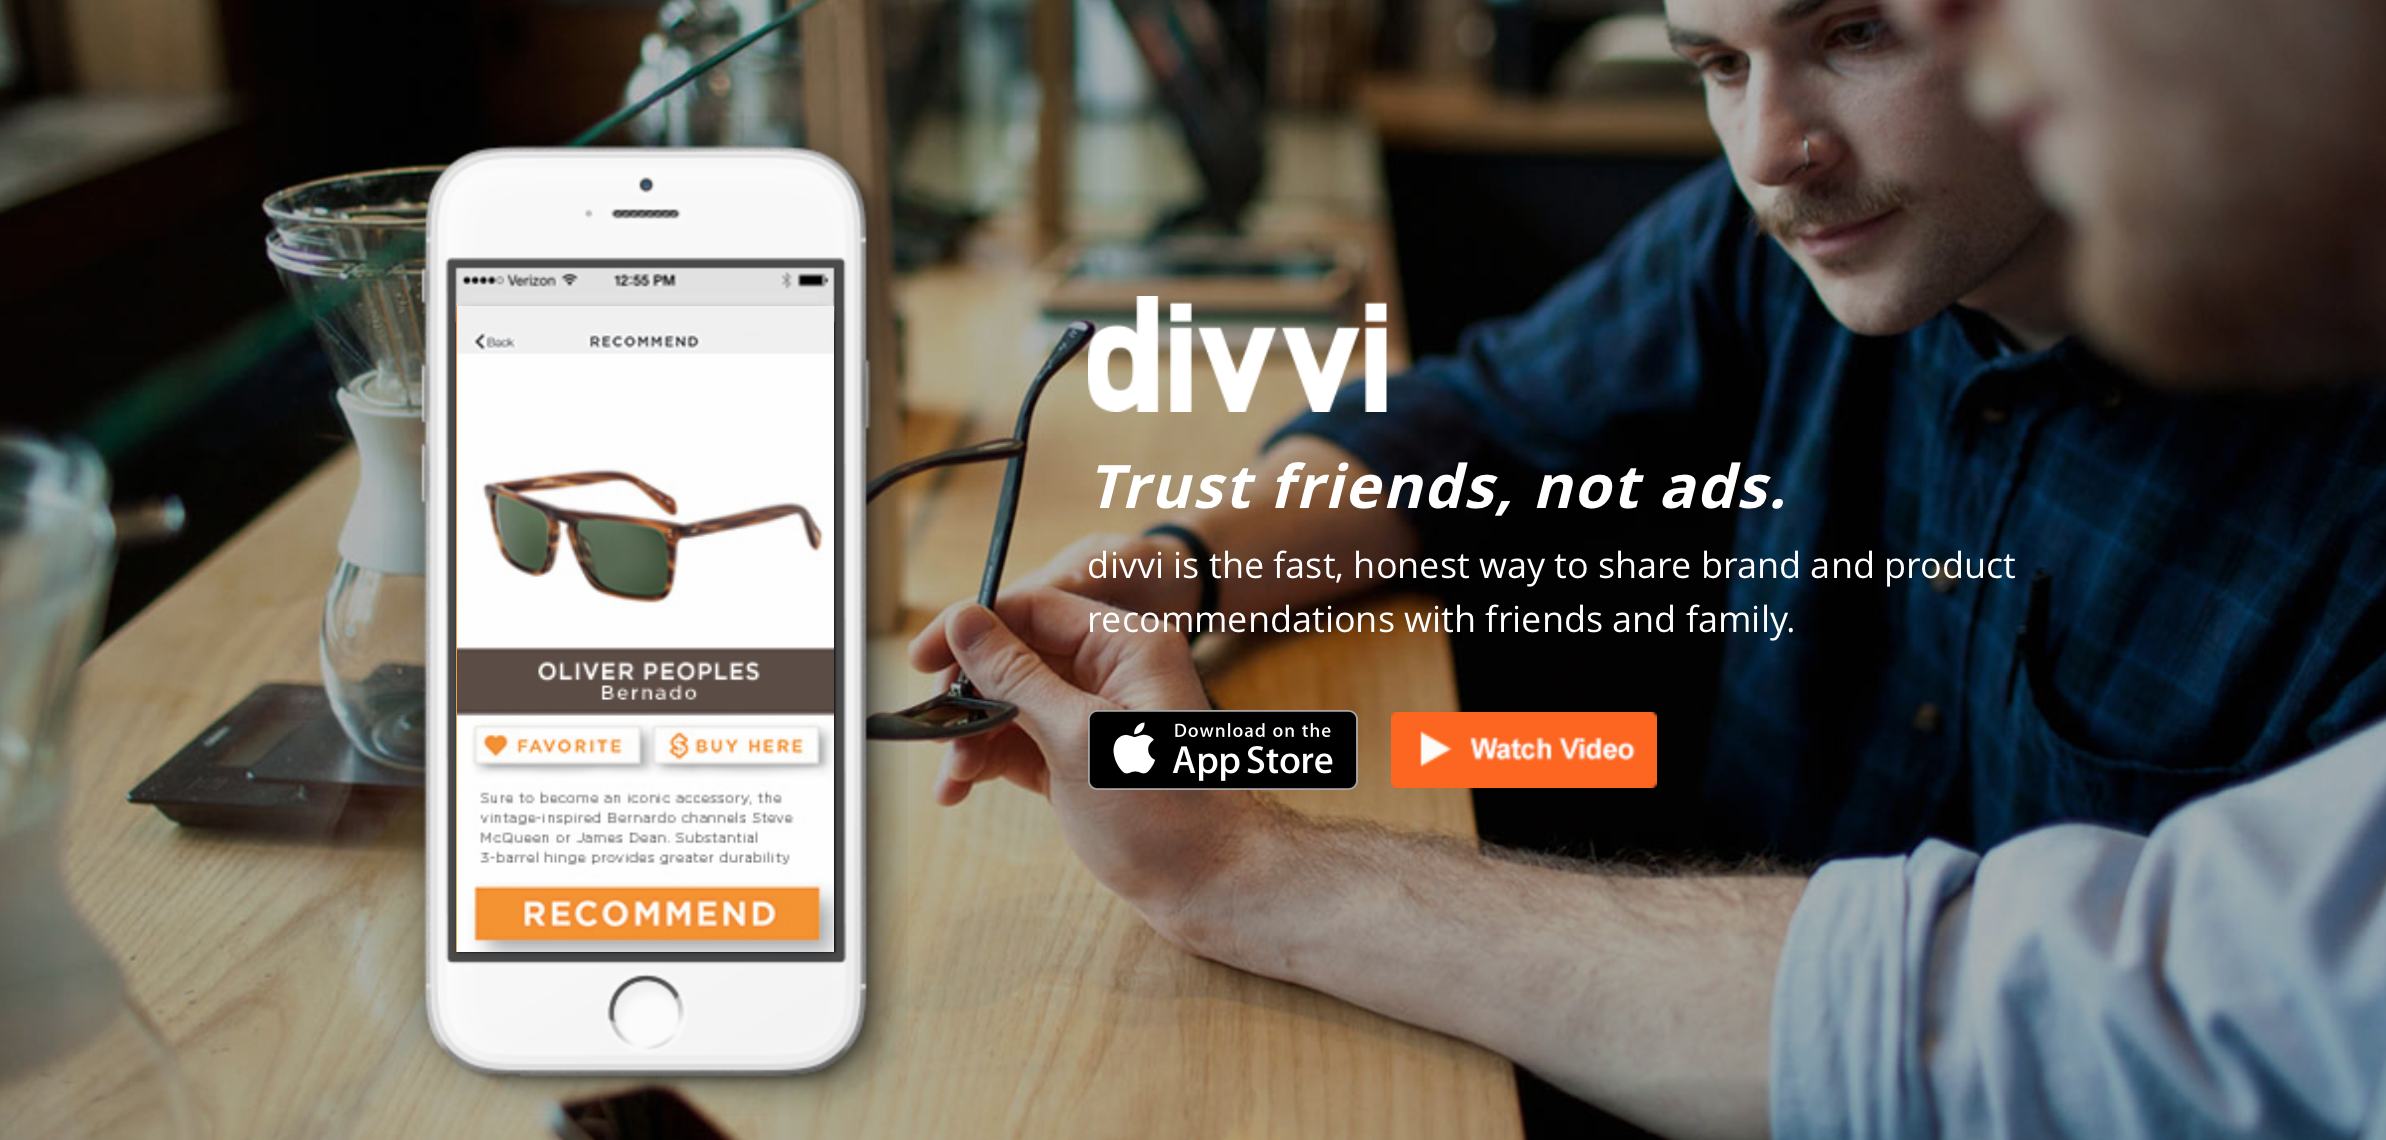 Divvi: because friends are more reliable than ads